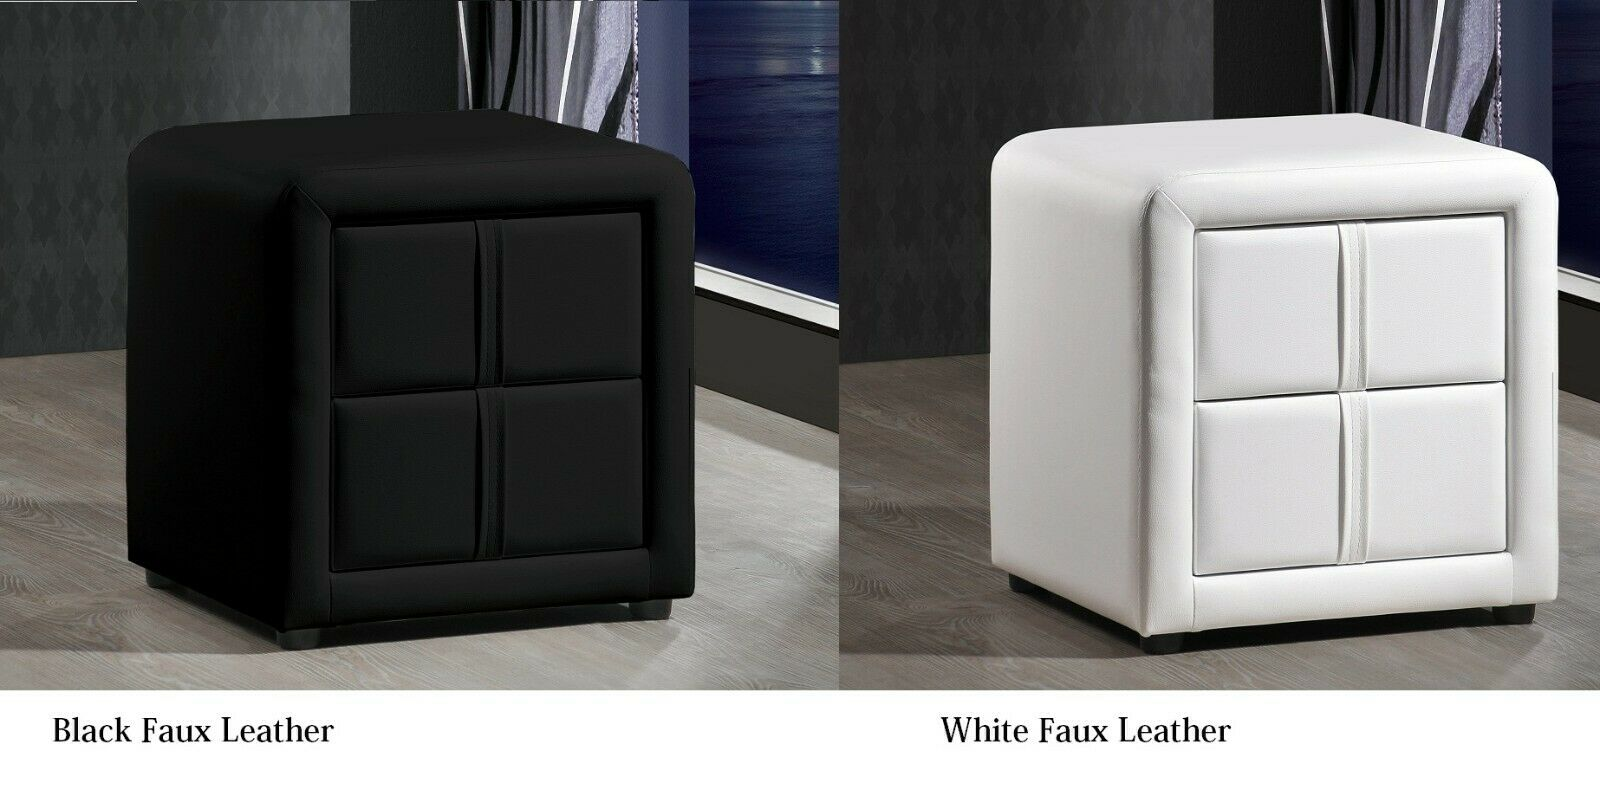 Picture of: Monaco Faux Leather 2 Drawer Bedside Table Or Cabinet Black White Ebay